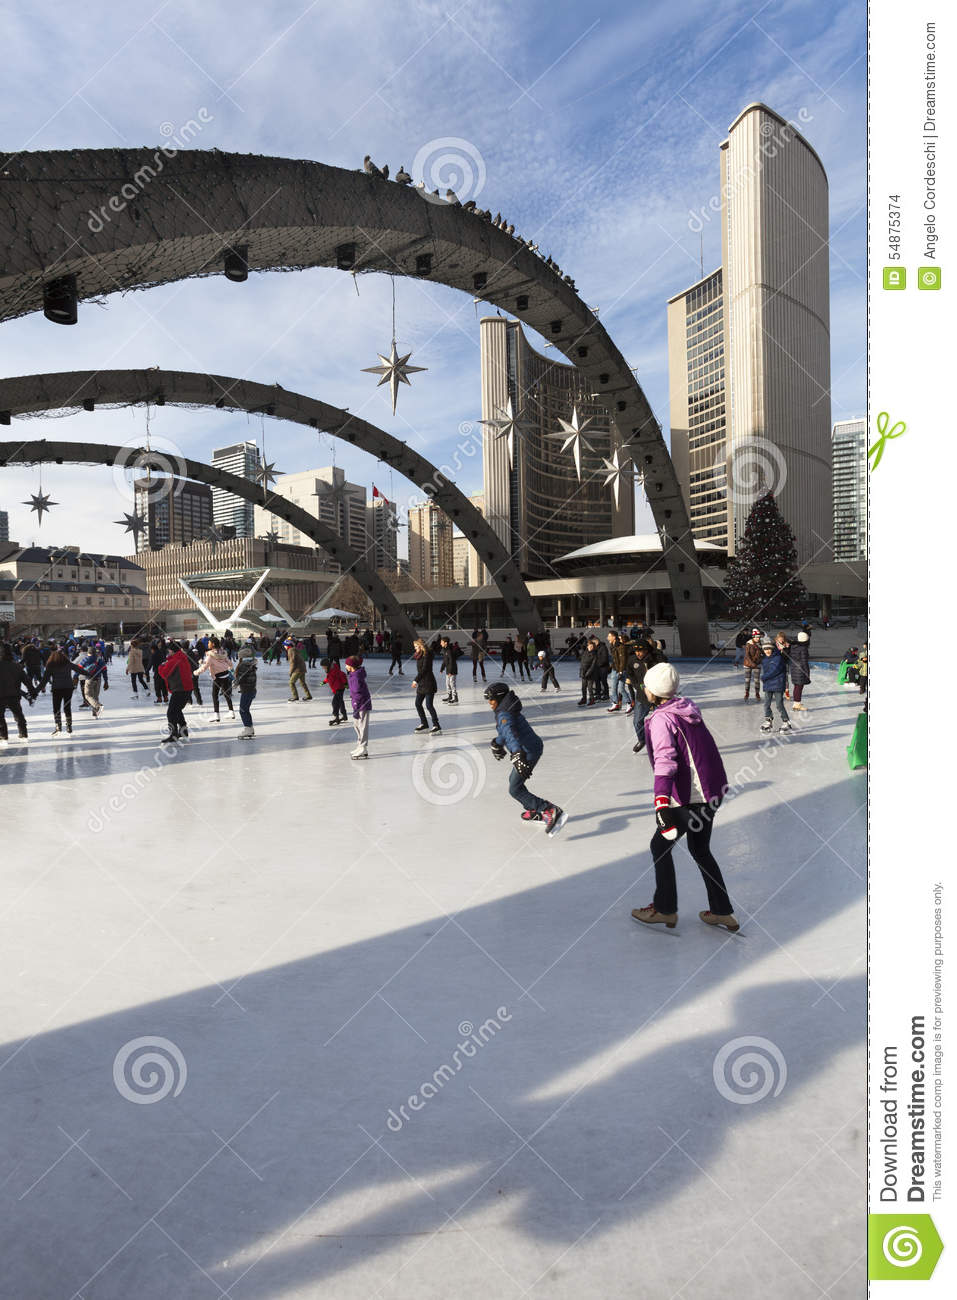 Roller skating rink toronto